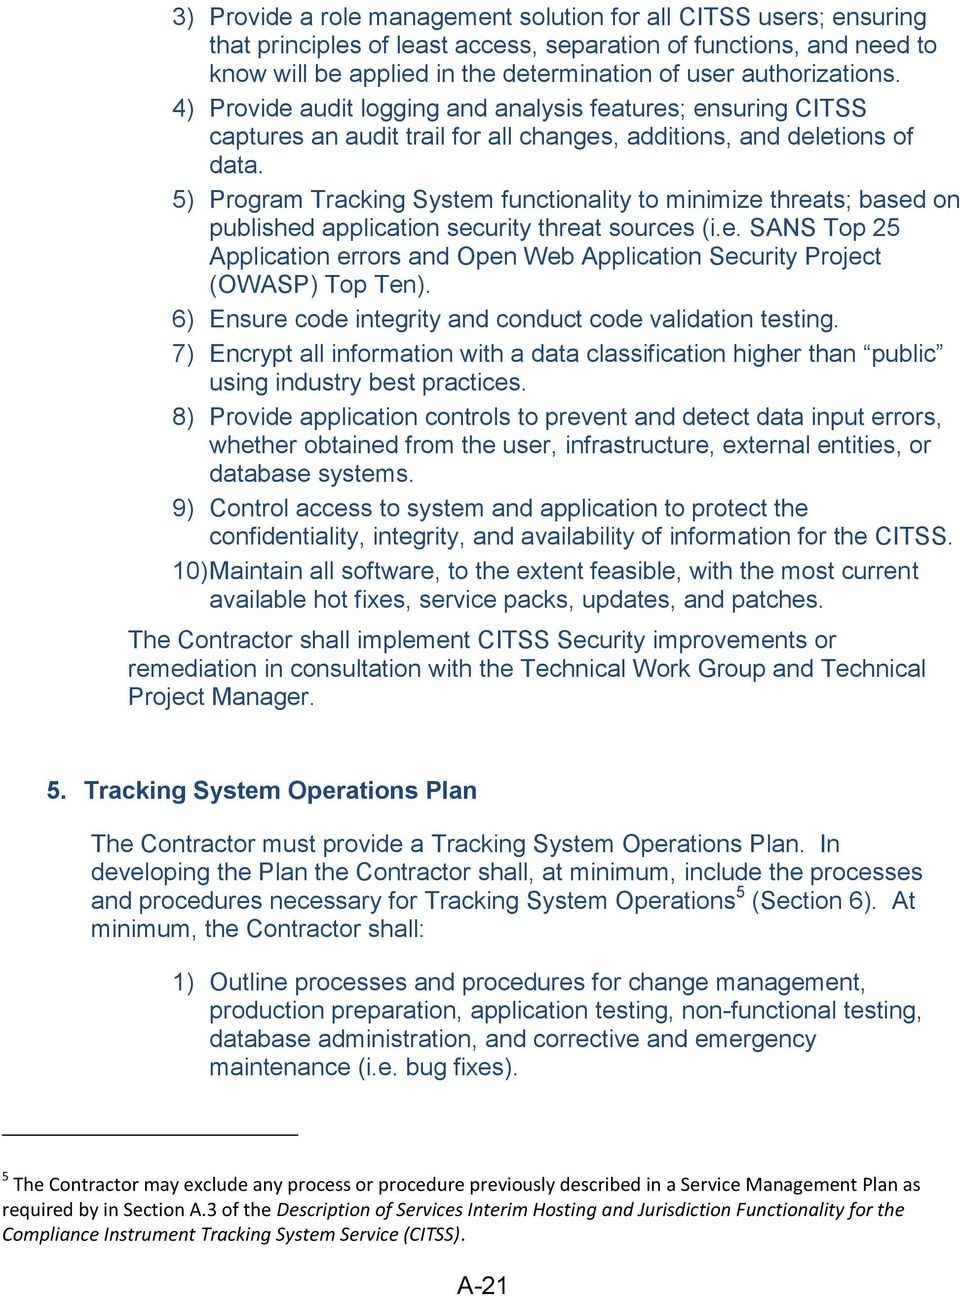 5) Program Tracking System functionality to minimize threats; based on published application security threat sources (i.e. SANS Top 25 Application errors and Open Web Application Security Project (OWASP) Top Ten).